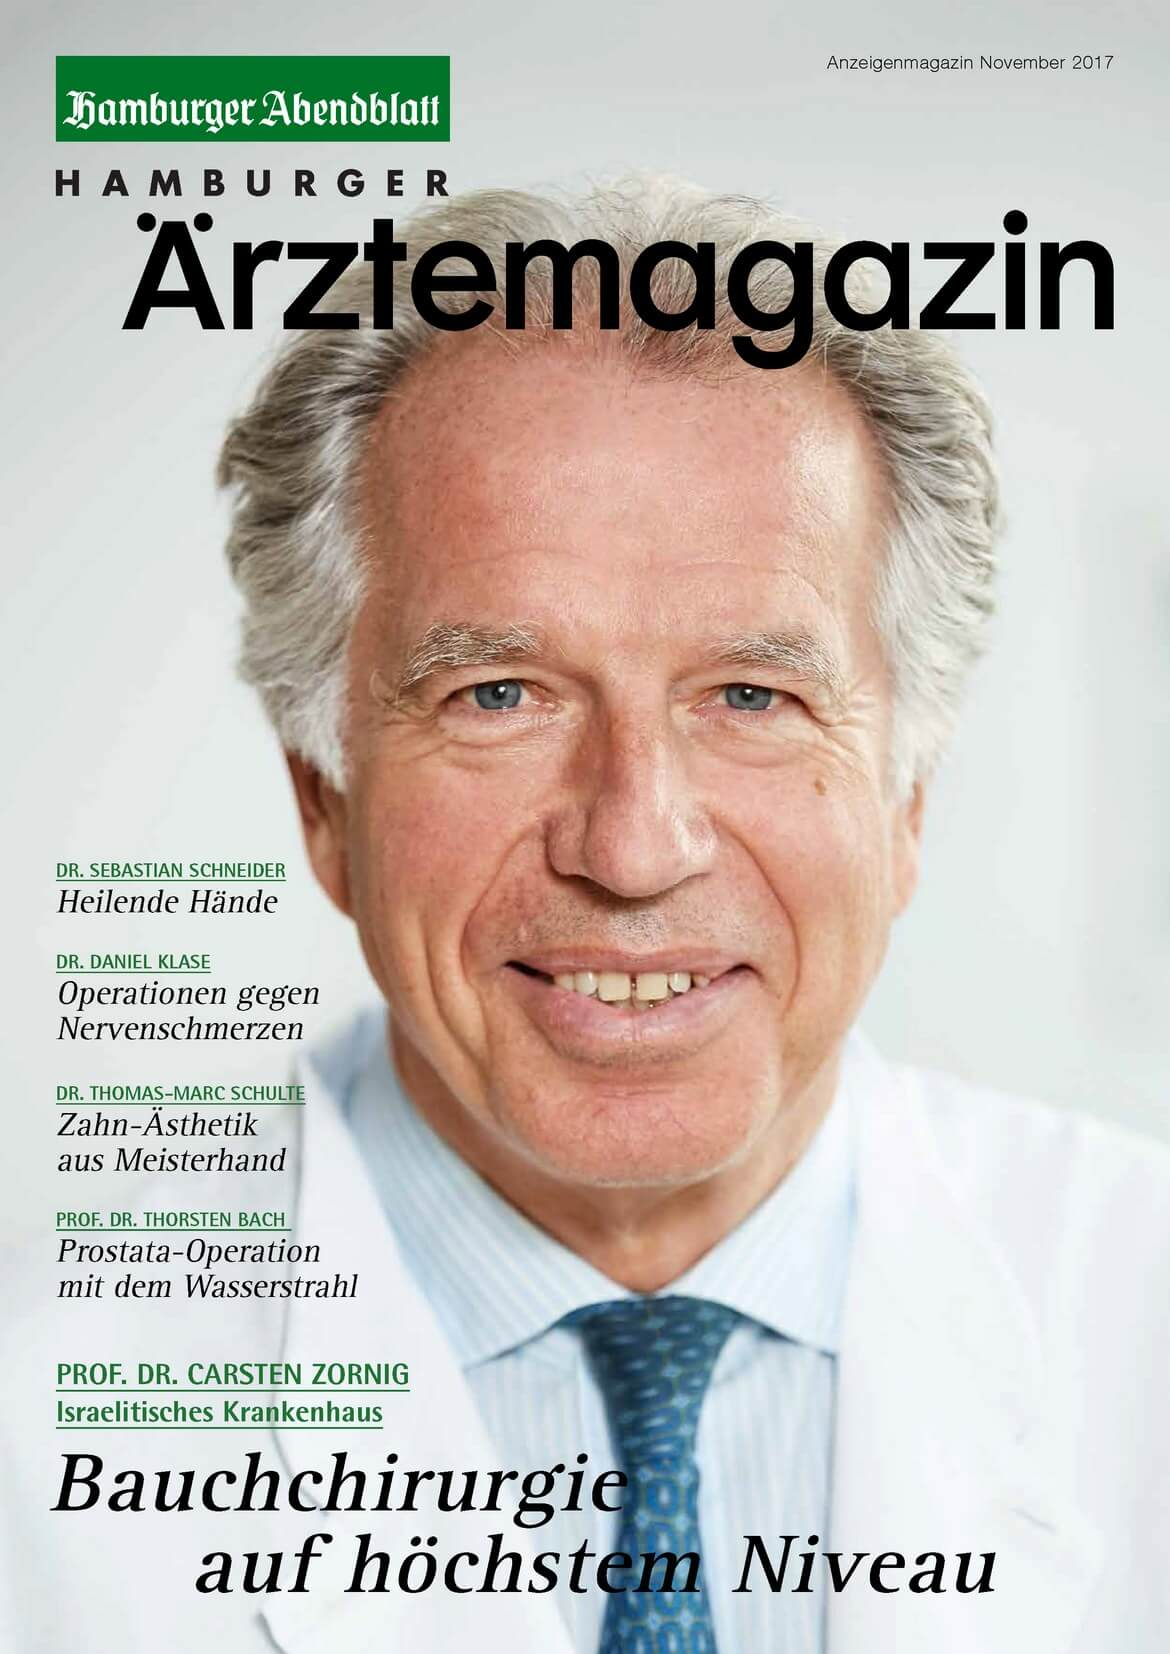 Hamburger Ärztemagazin November 2017 erschienen